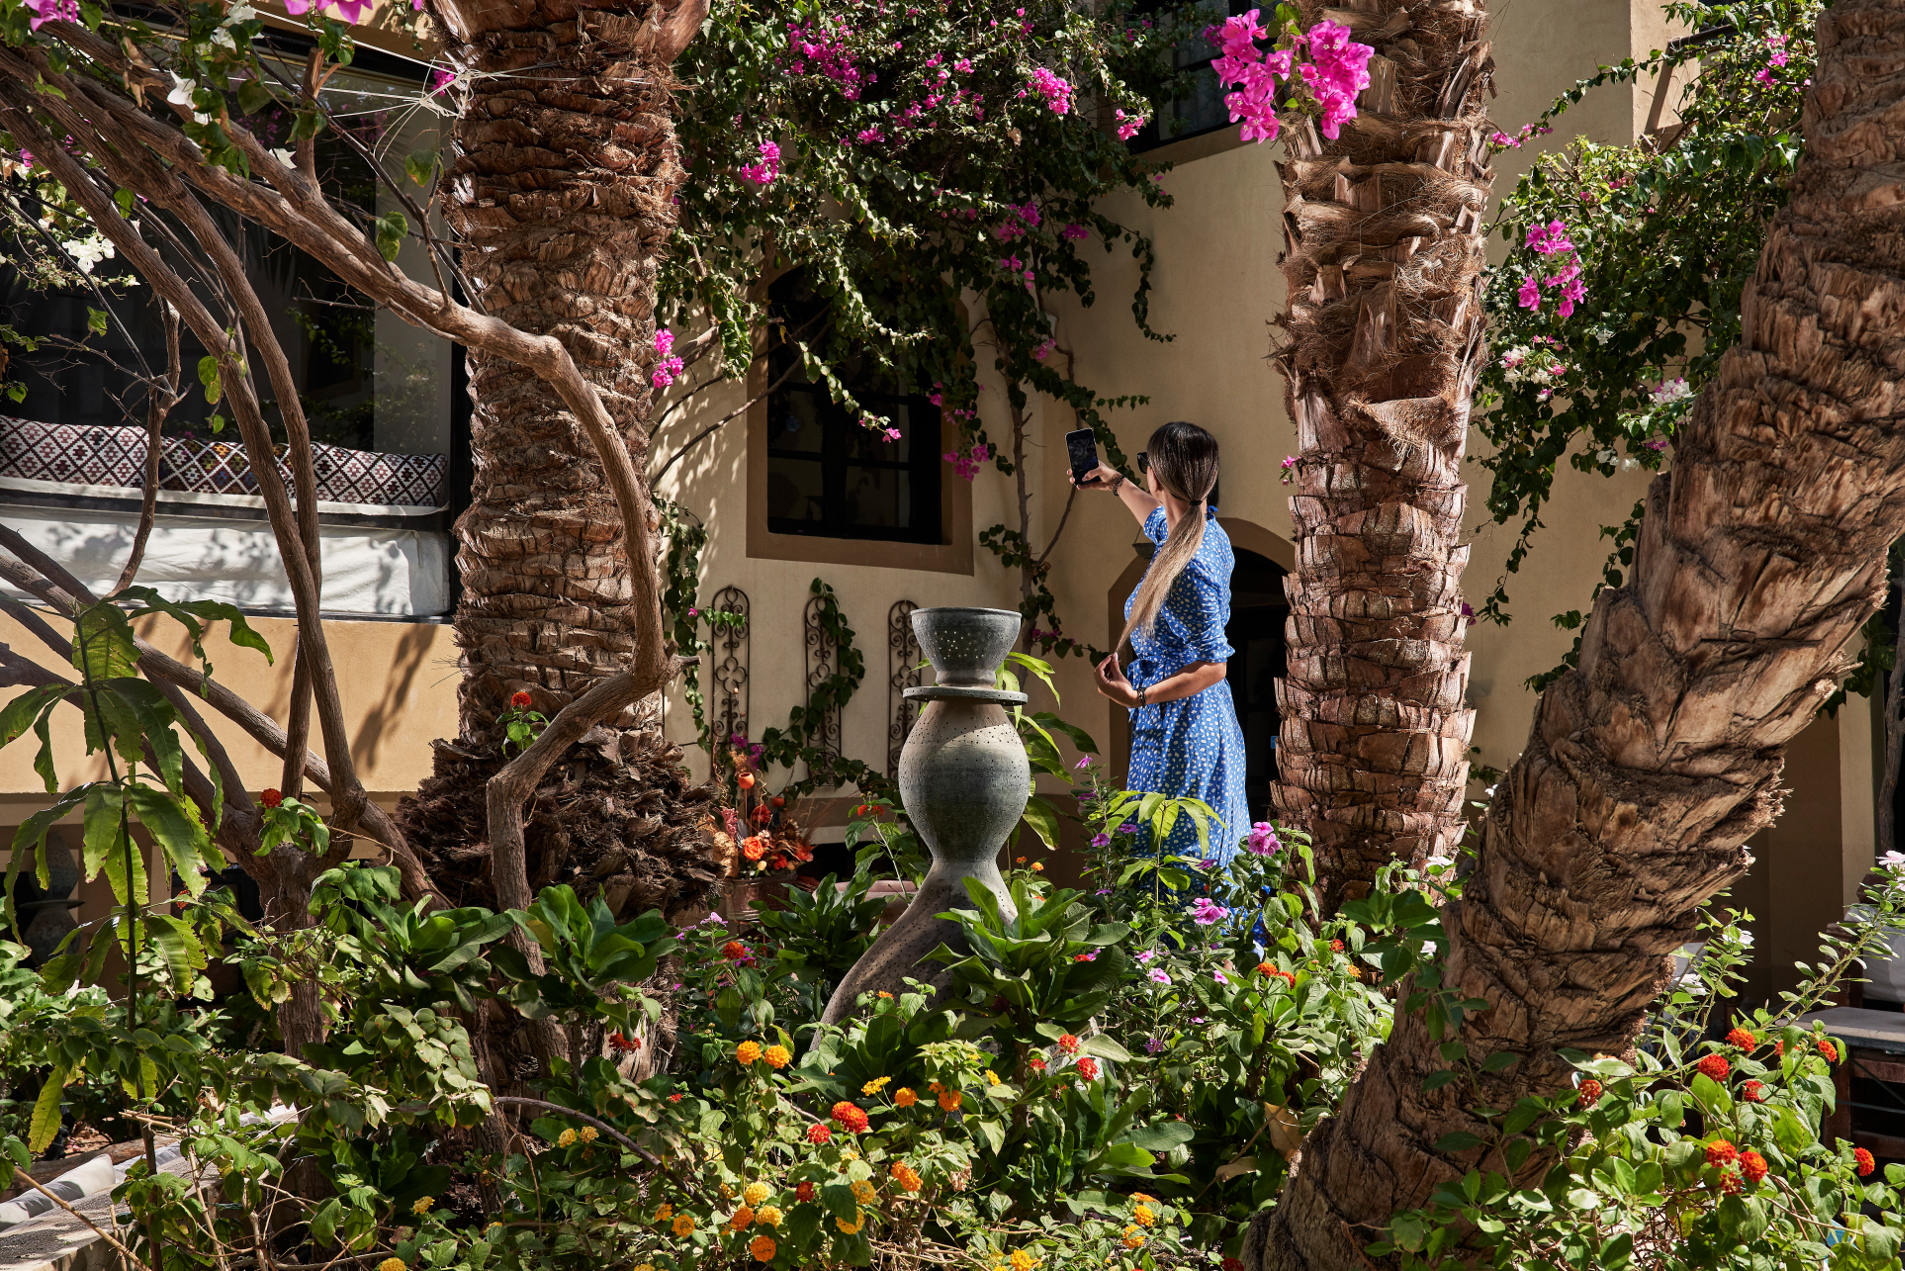 A female guest of Dawar El Omda Boutique Hotel talking a selfie in the hotel's courtyard filled with picturesque greenery